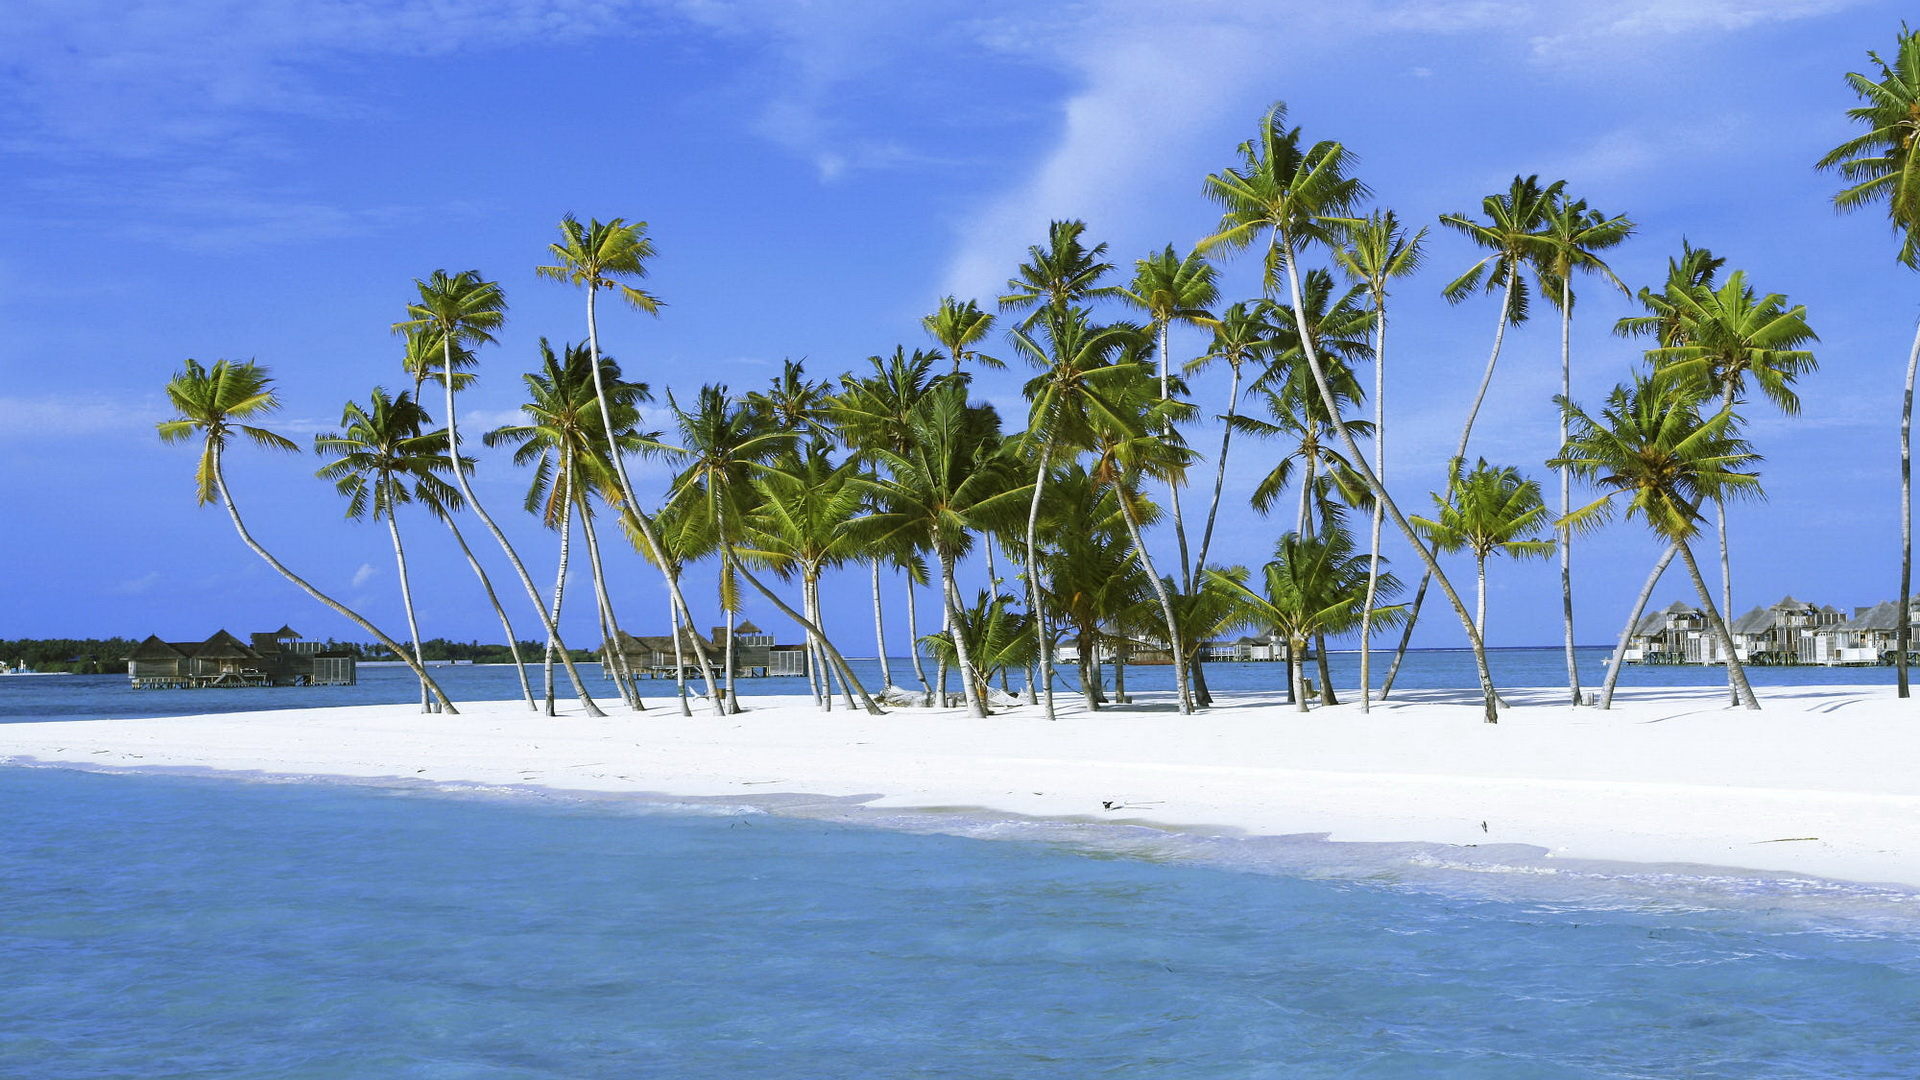 Beach-and-Awesome-Palm-trees-1920x1080-Need-iPhone-S-Plus-Background-for-IPhone-wallpaper-wp3402954